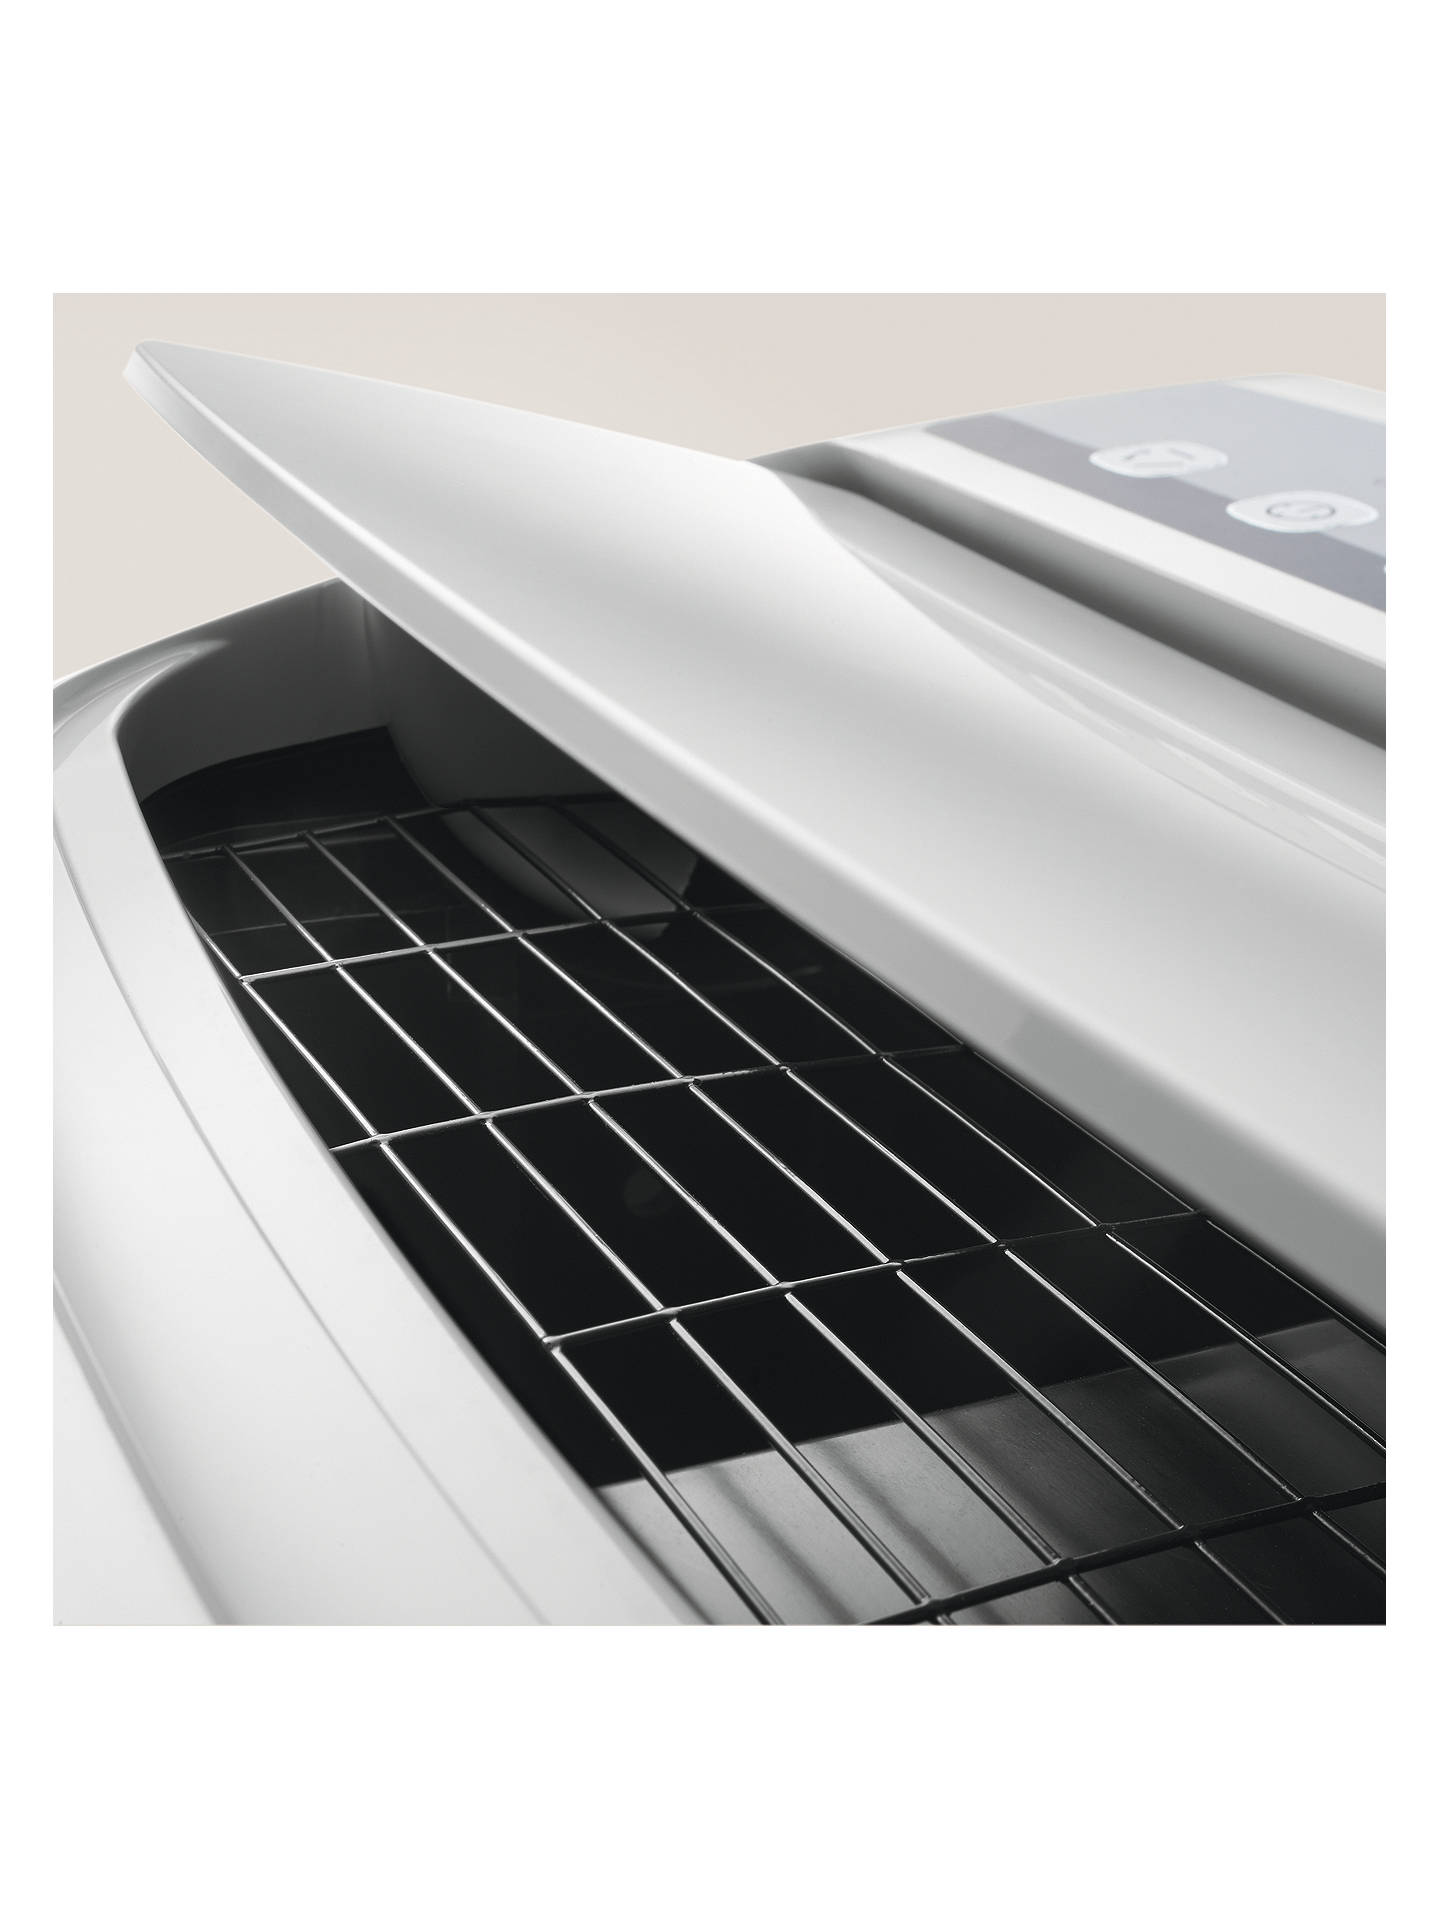 Electrolux Exp09hn1wi Portable Air Conditioner White At